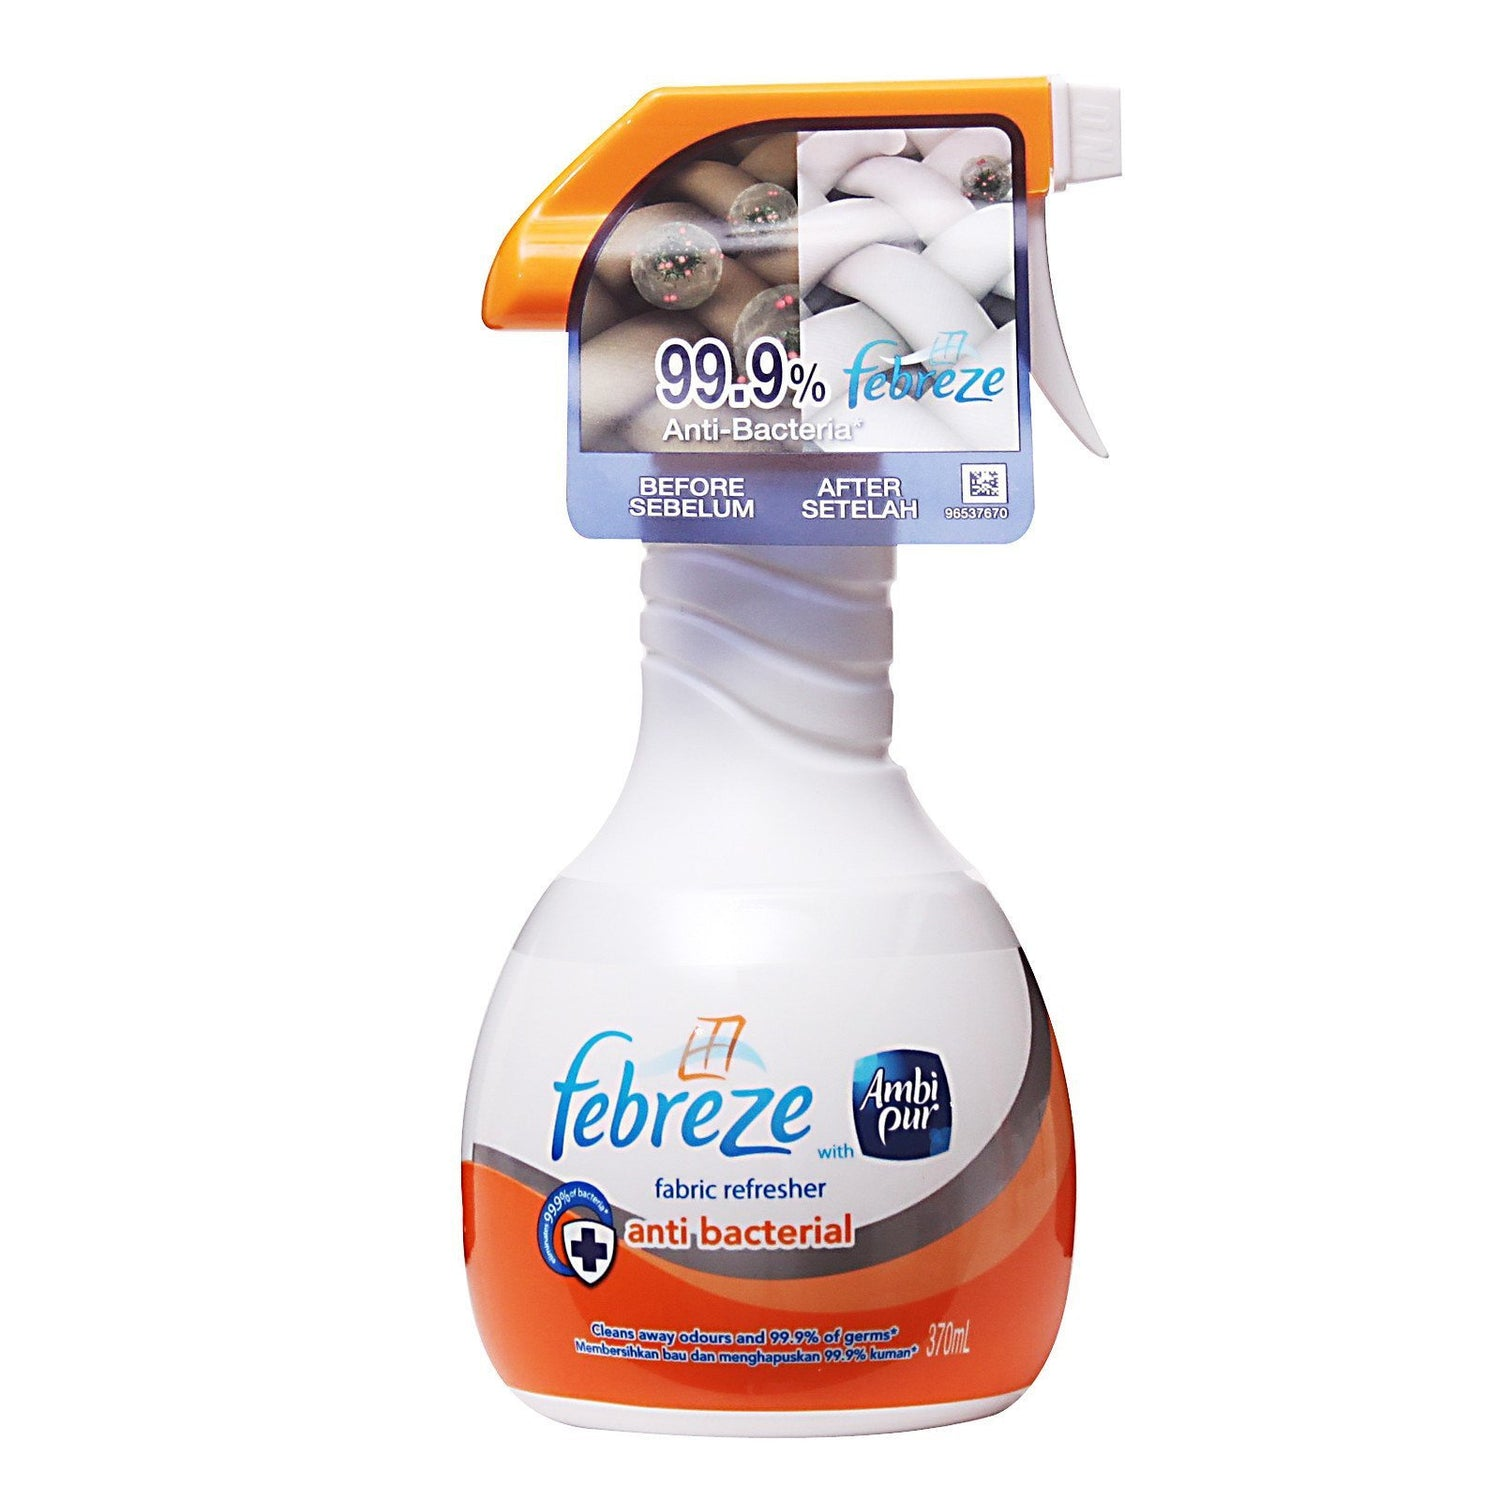 Febreze - Anti Bacterial 370ml | CherryAffairs Singapore